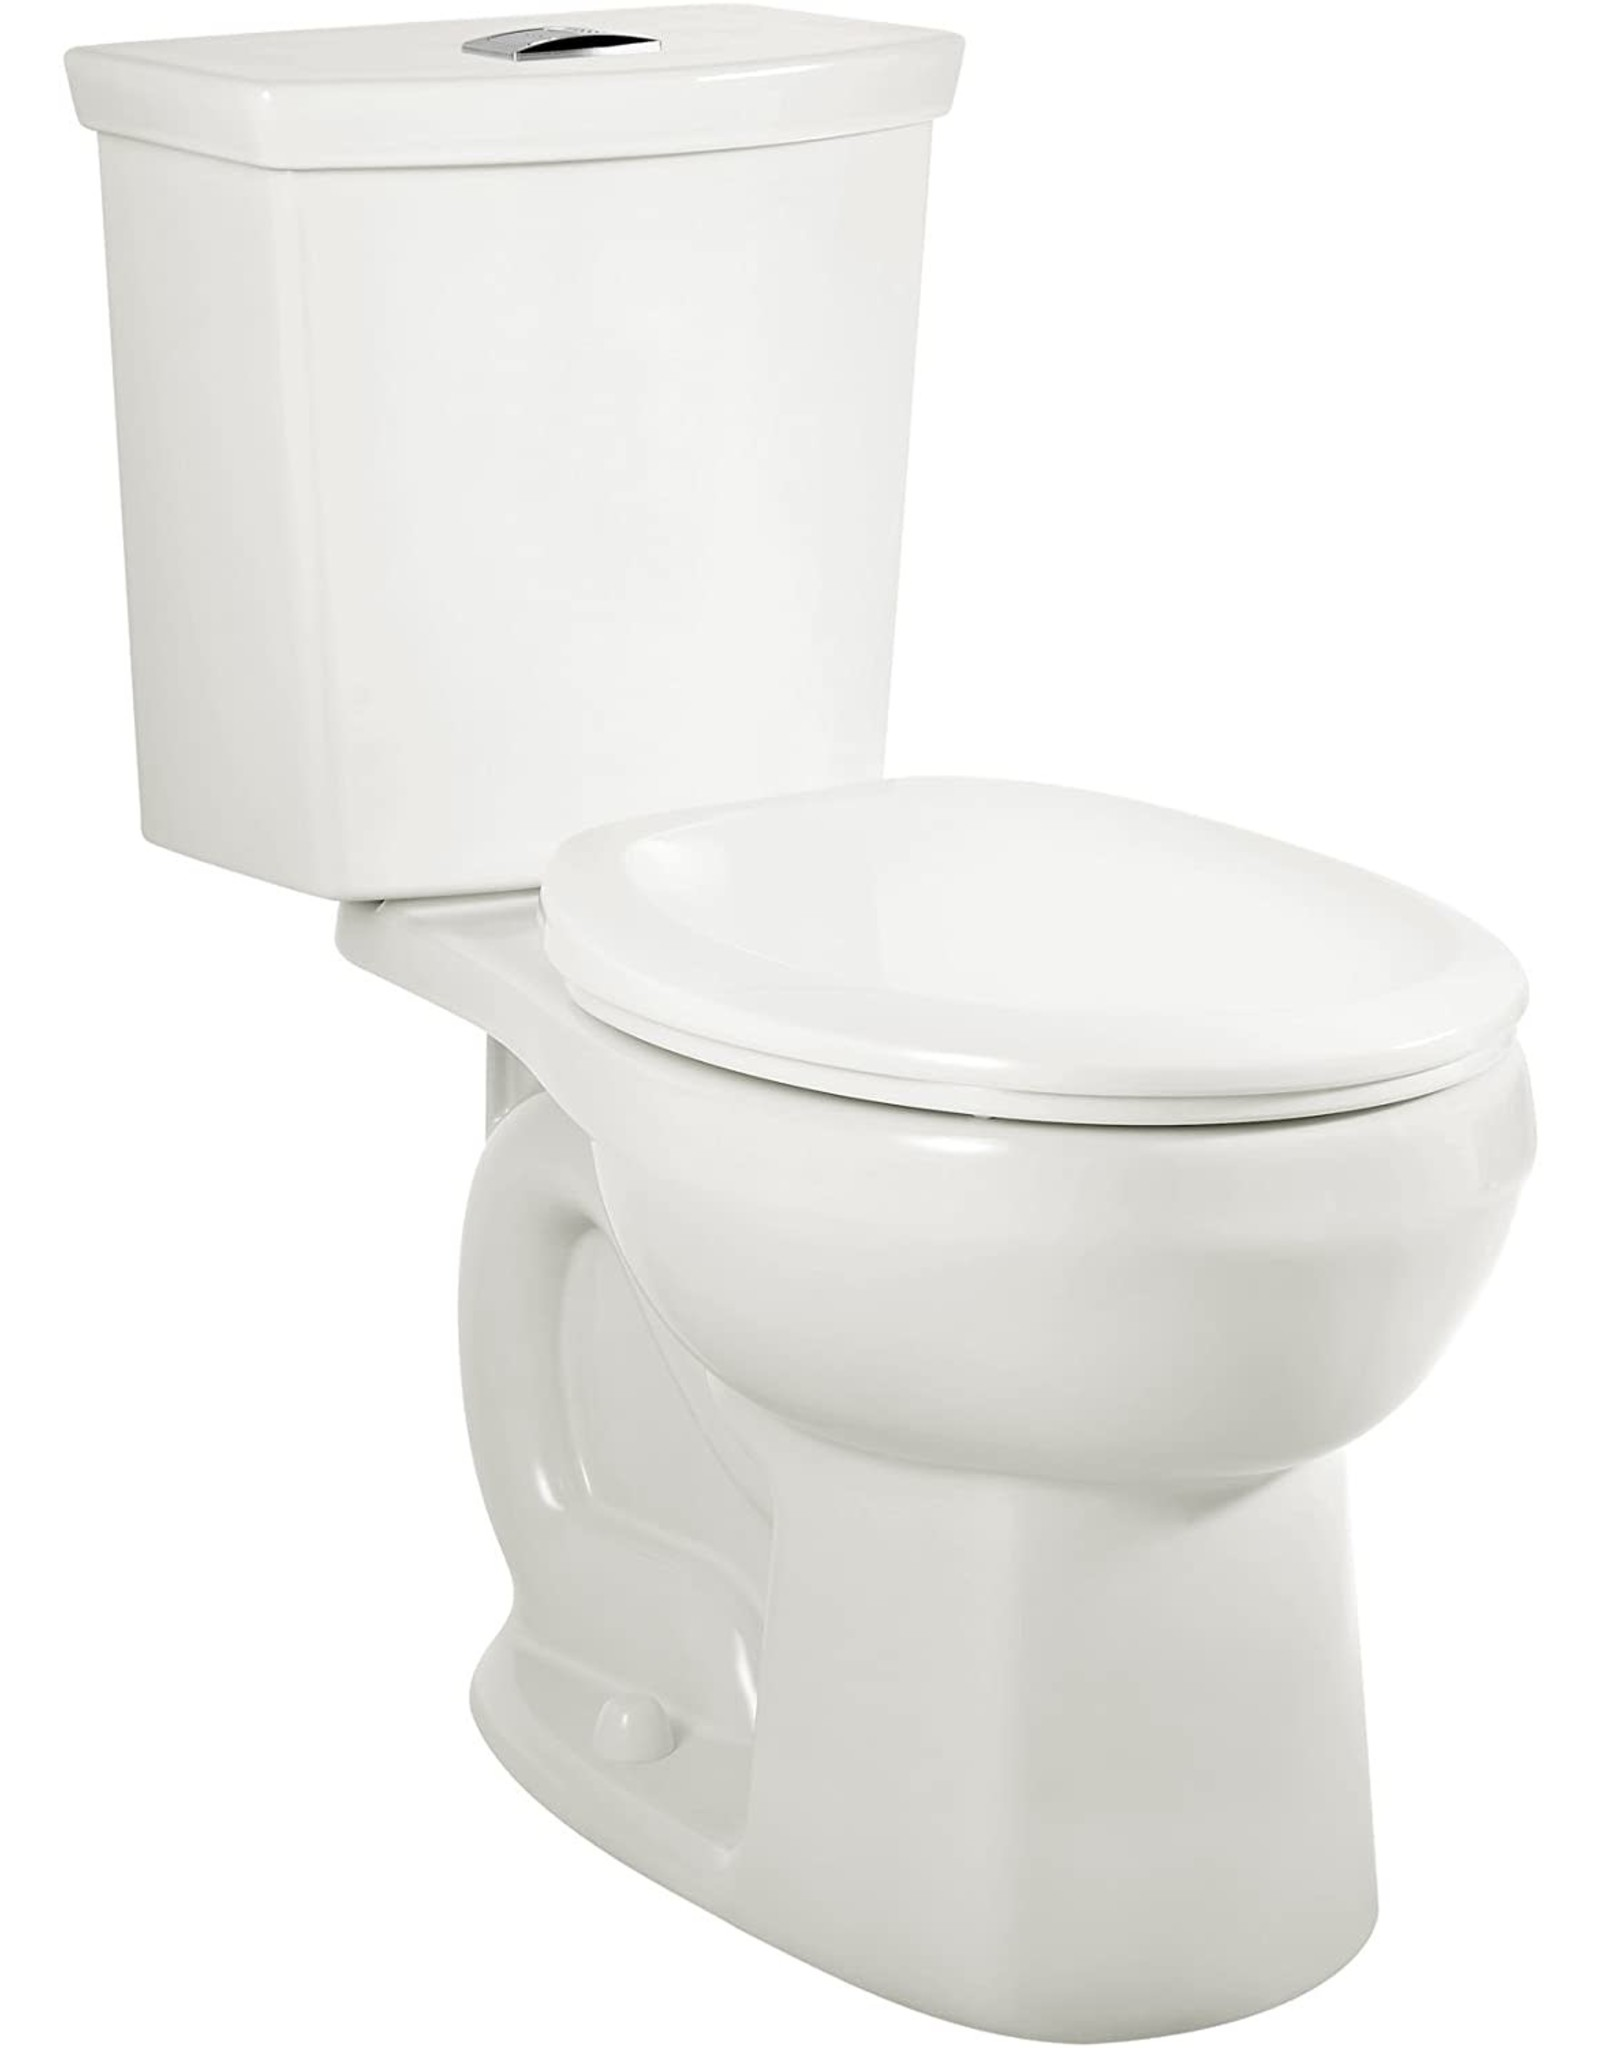 American Standard American Standard 2889518.020 H2Option Siphonic Dual Flush Normal Height Round Front Toilet with Liner, White, 2-Piece